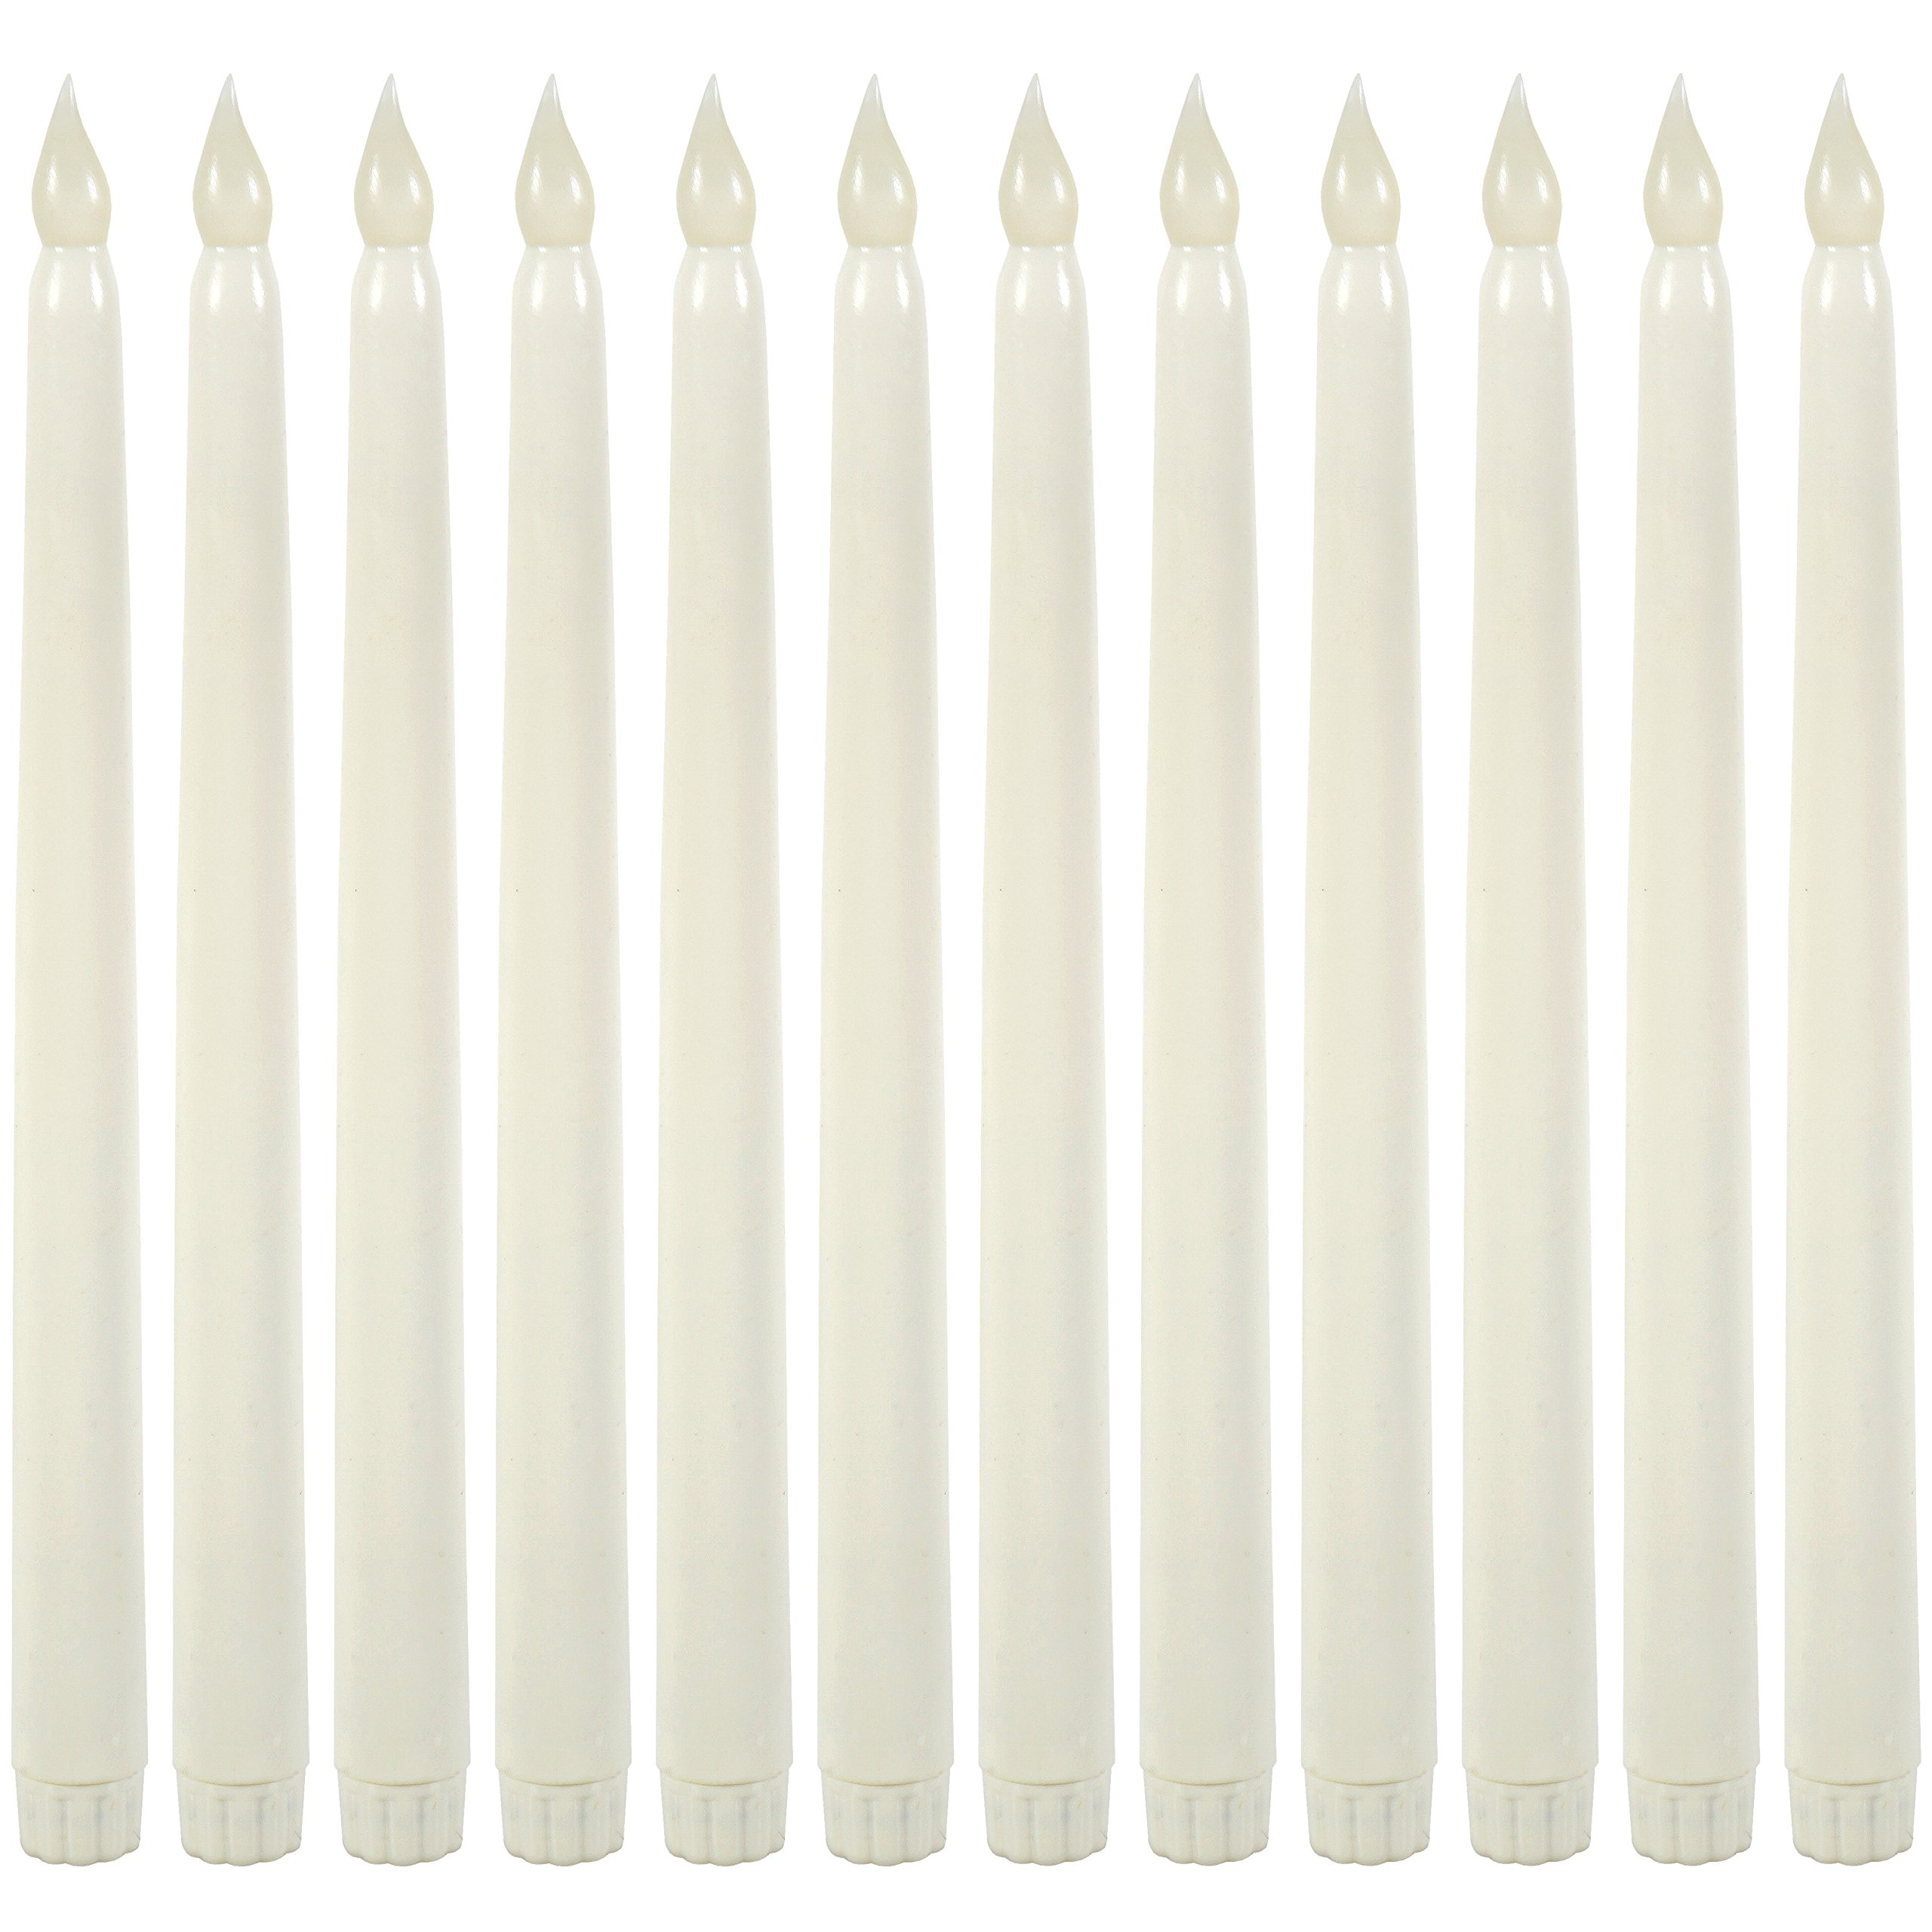 WYZworks 11'' Ivory Taper Flameless LED Faux Wax Candle 12PK